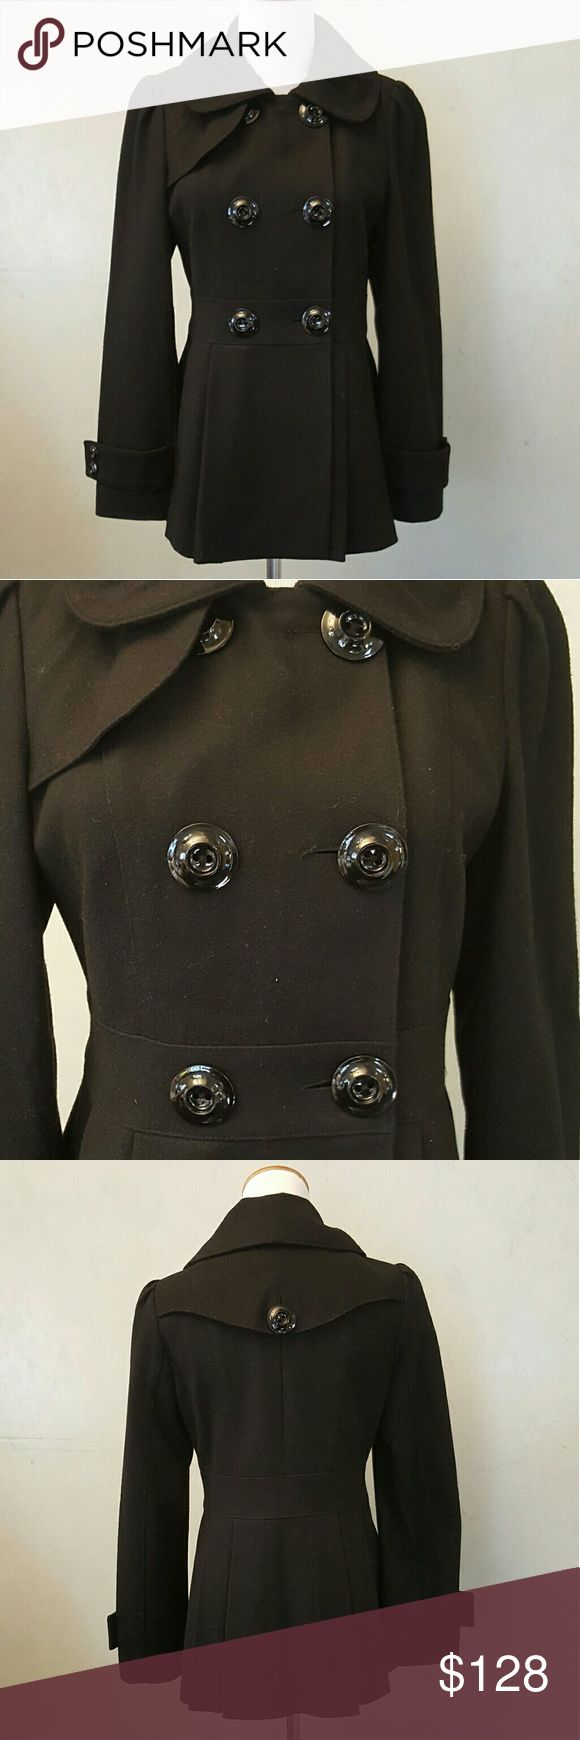 Guess Peacoat Guess black peacoat in perfect condition like new petite small Guess Jackets & Coats Pea Coats